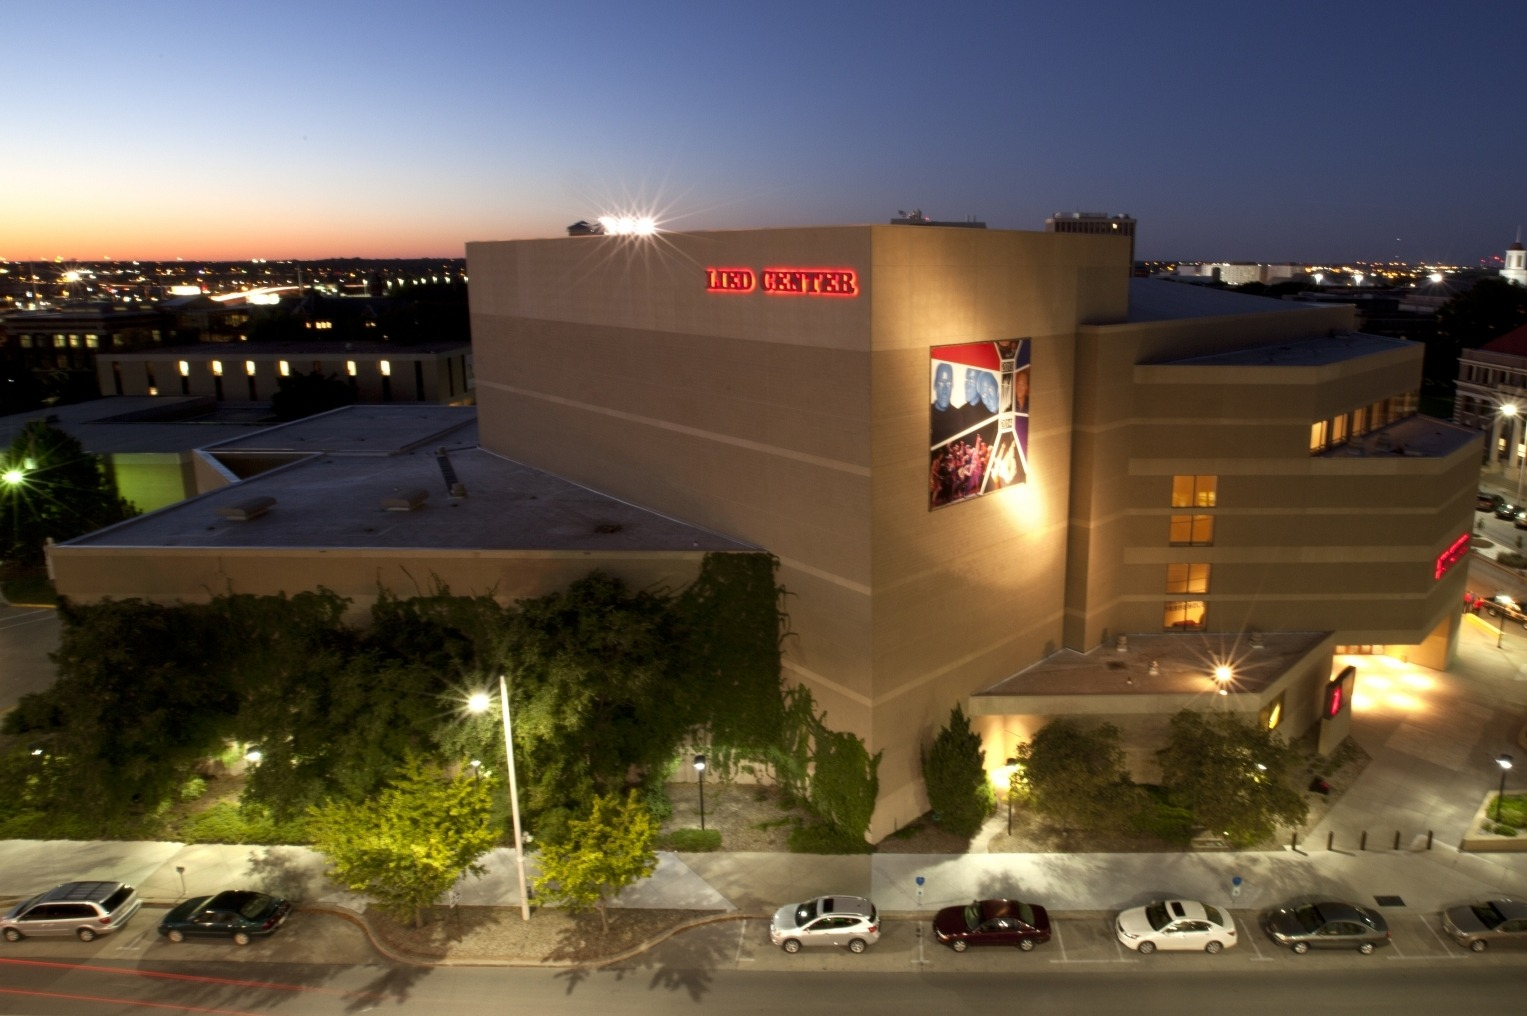 Timelapse photo of the Lied Center exterior at night.